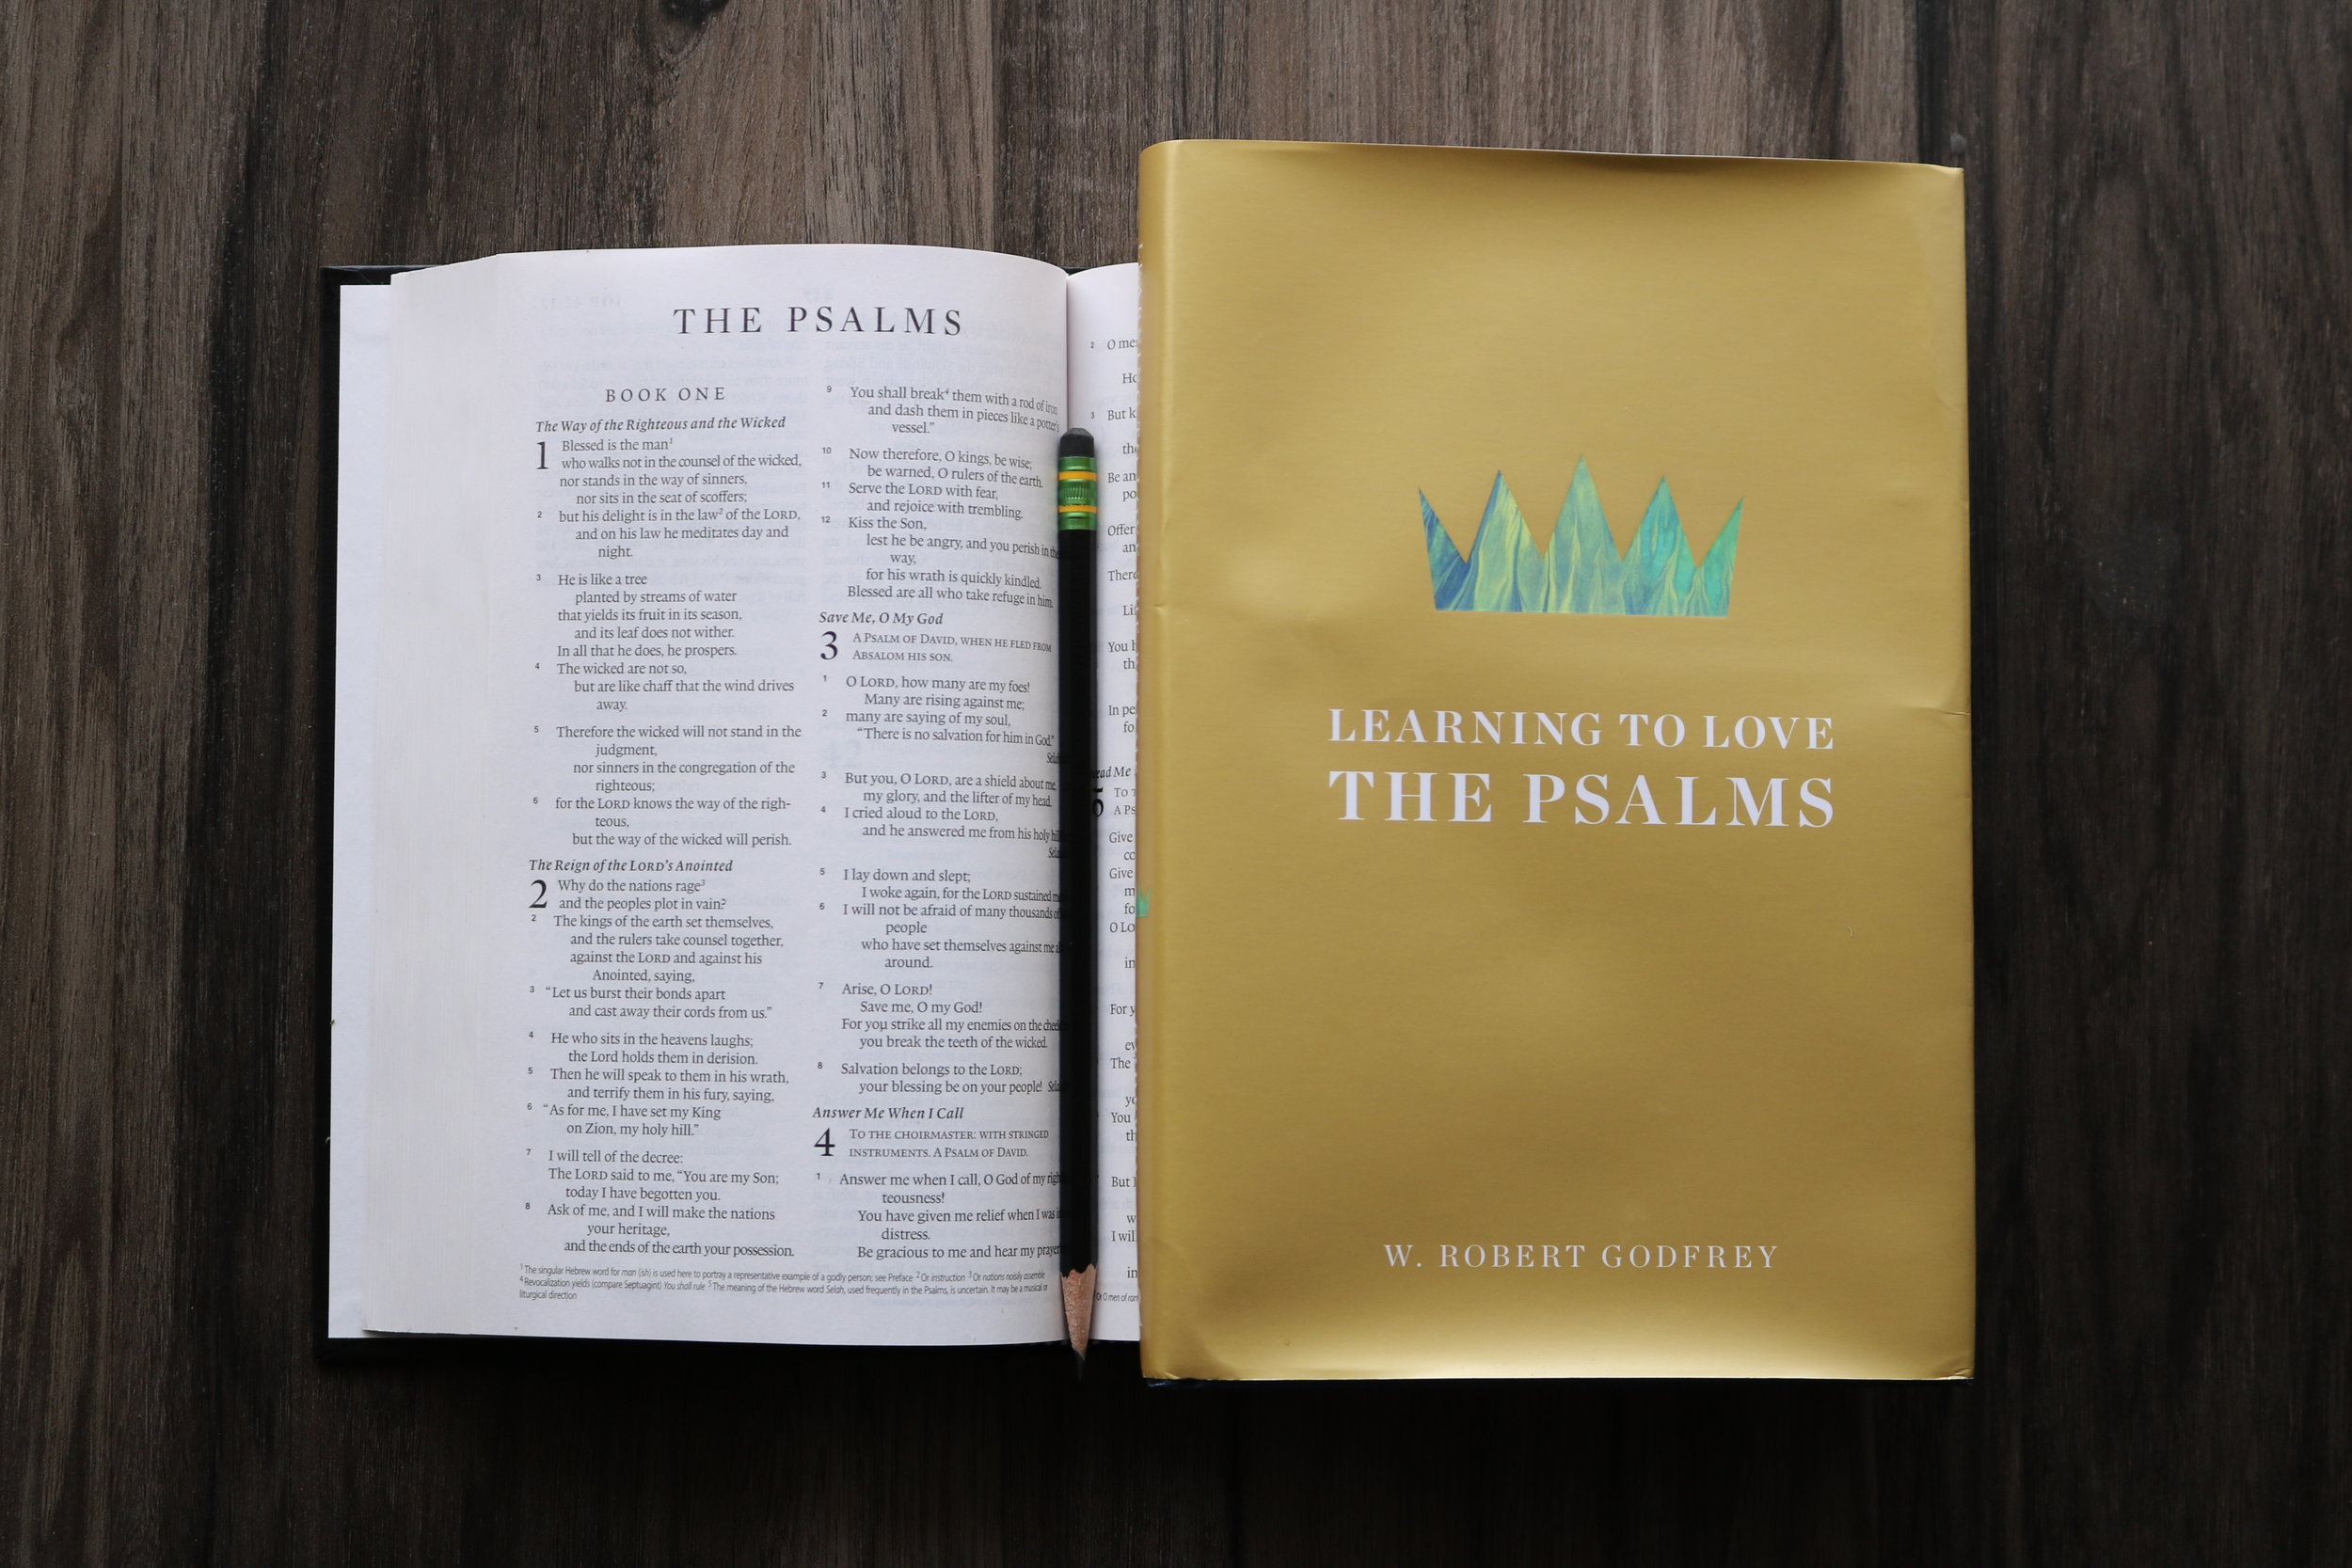 Additional Resources - We've collected resources such as books, articles, past sermons, and additional studies to help you grow in Christ.